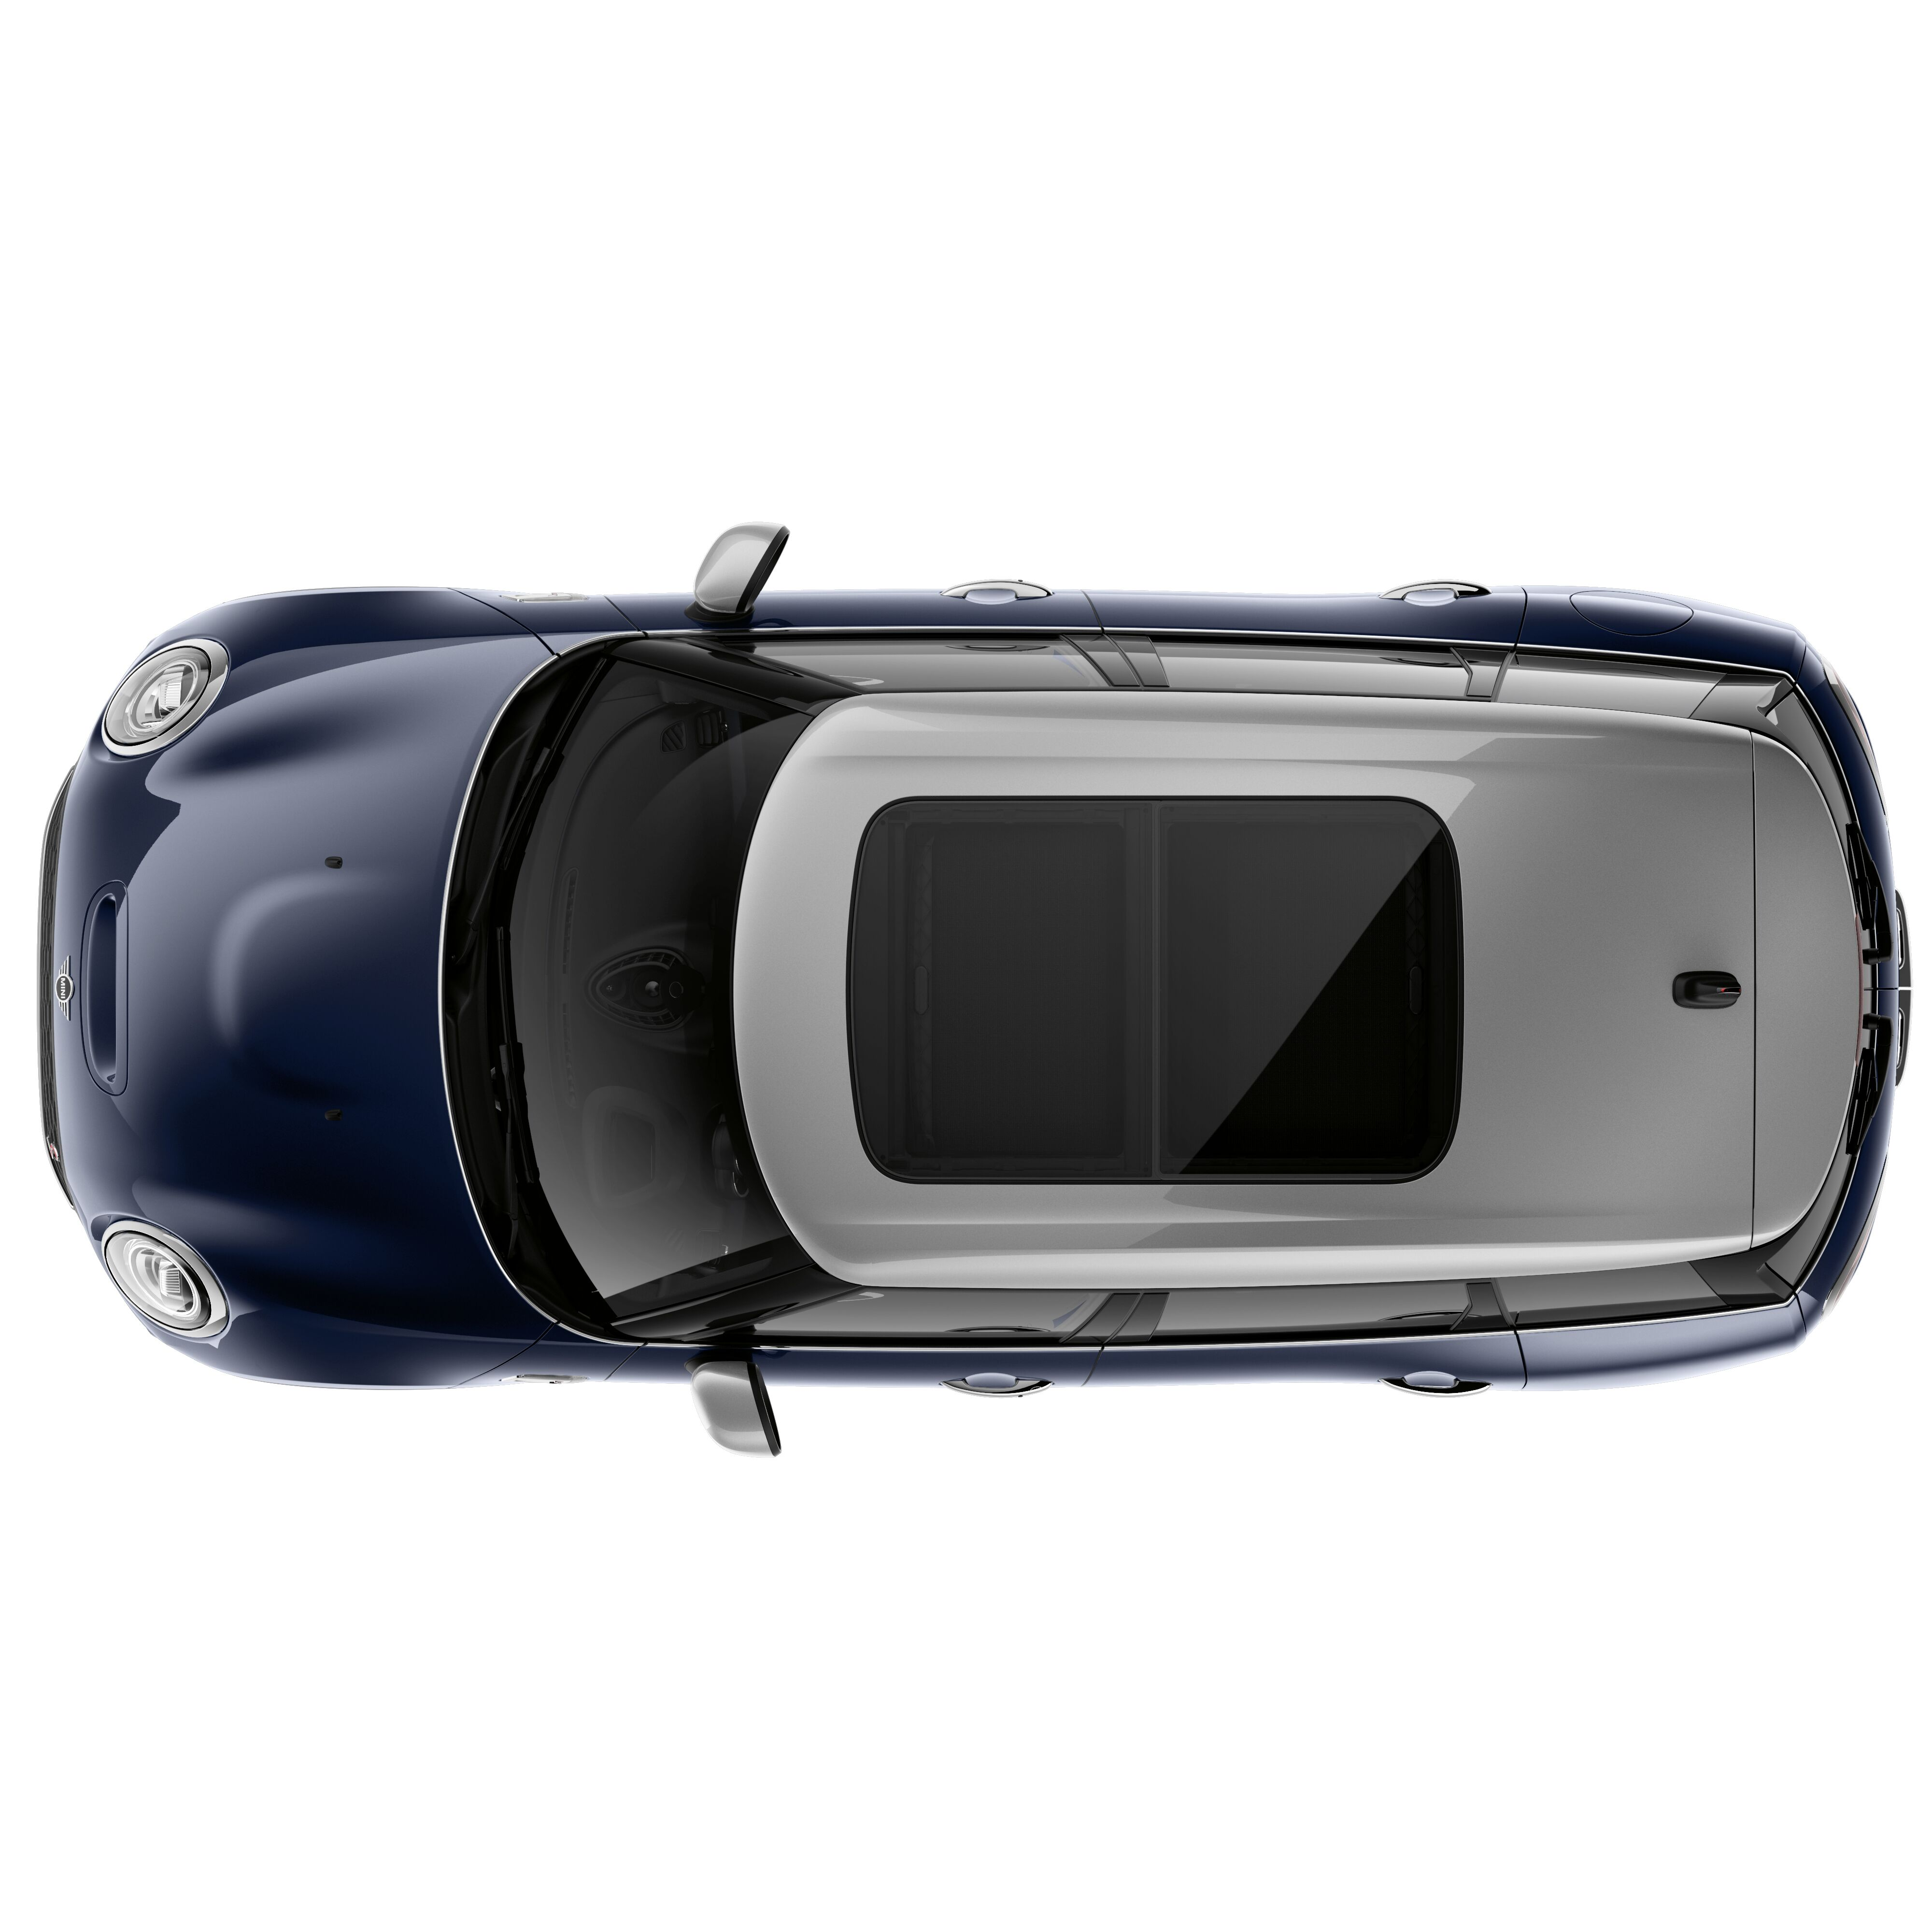 Panorama glass sliding/tilting sun roof, electrically operated